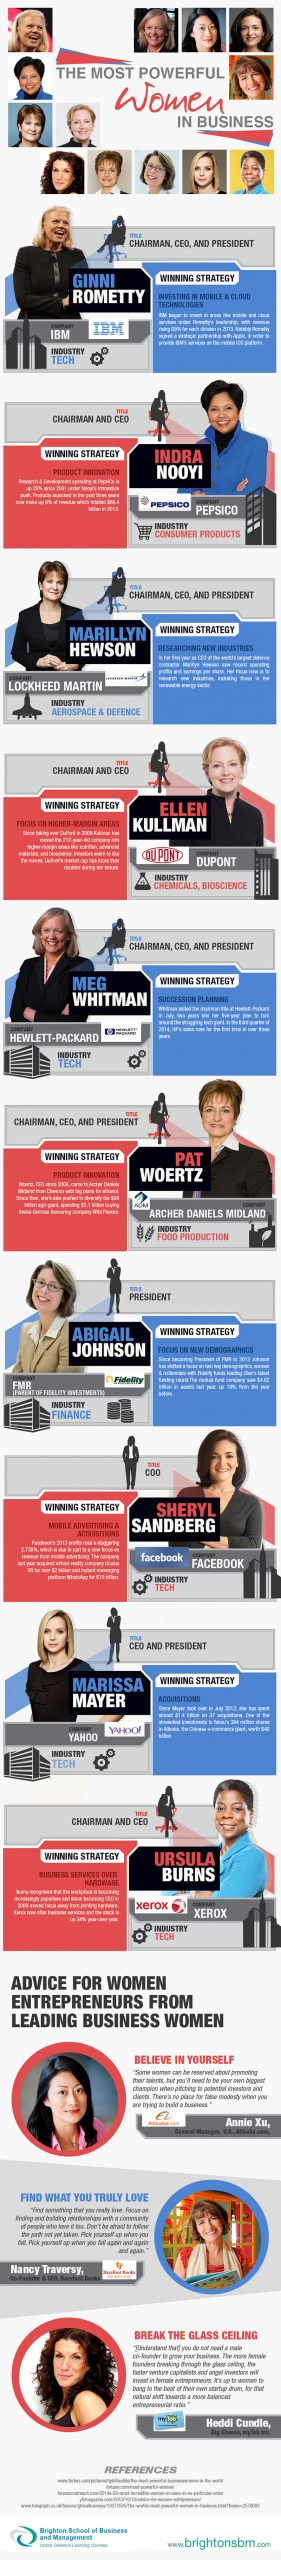 Most-Powerful-Women-in-Business